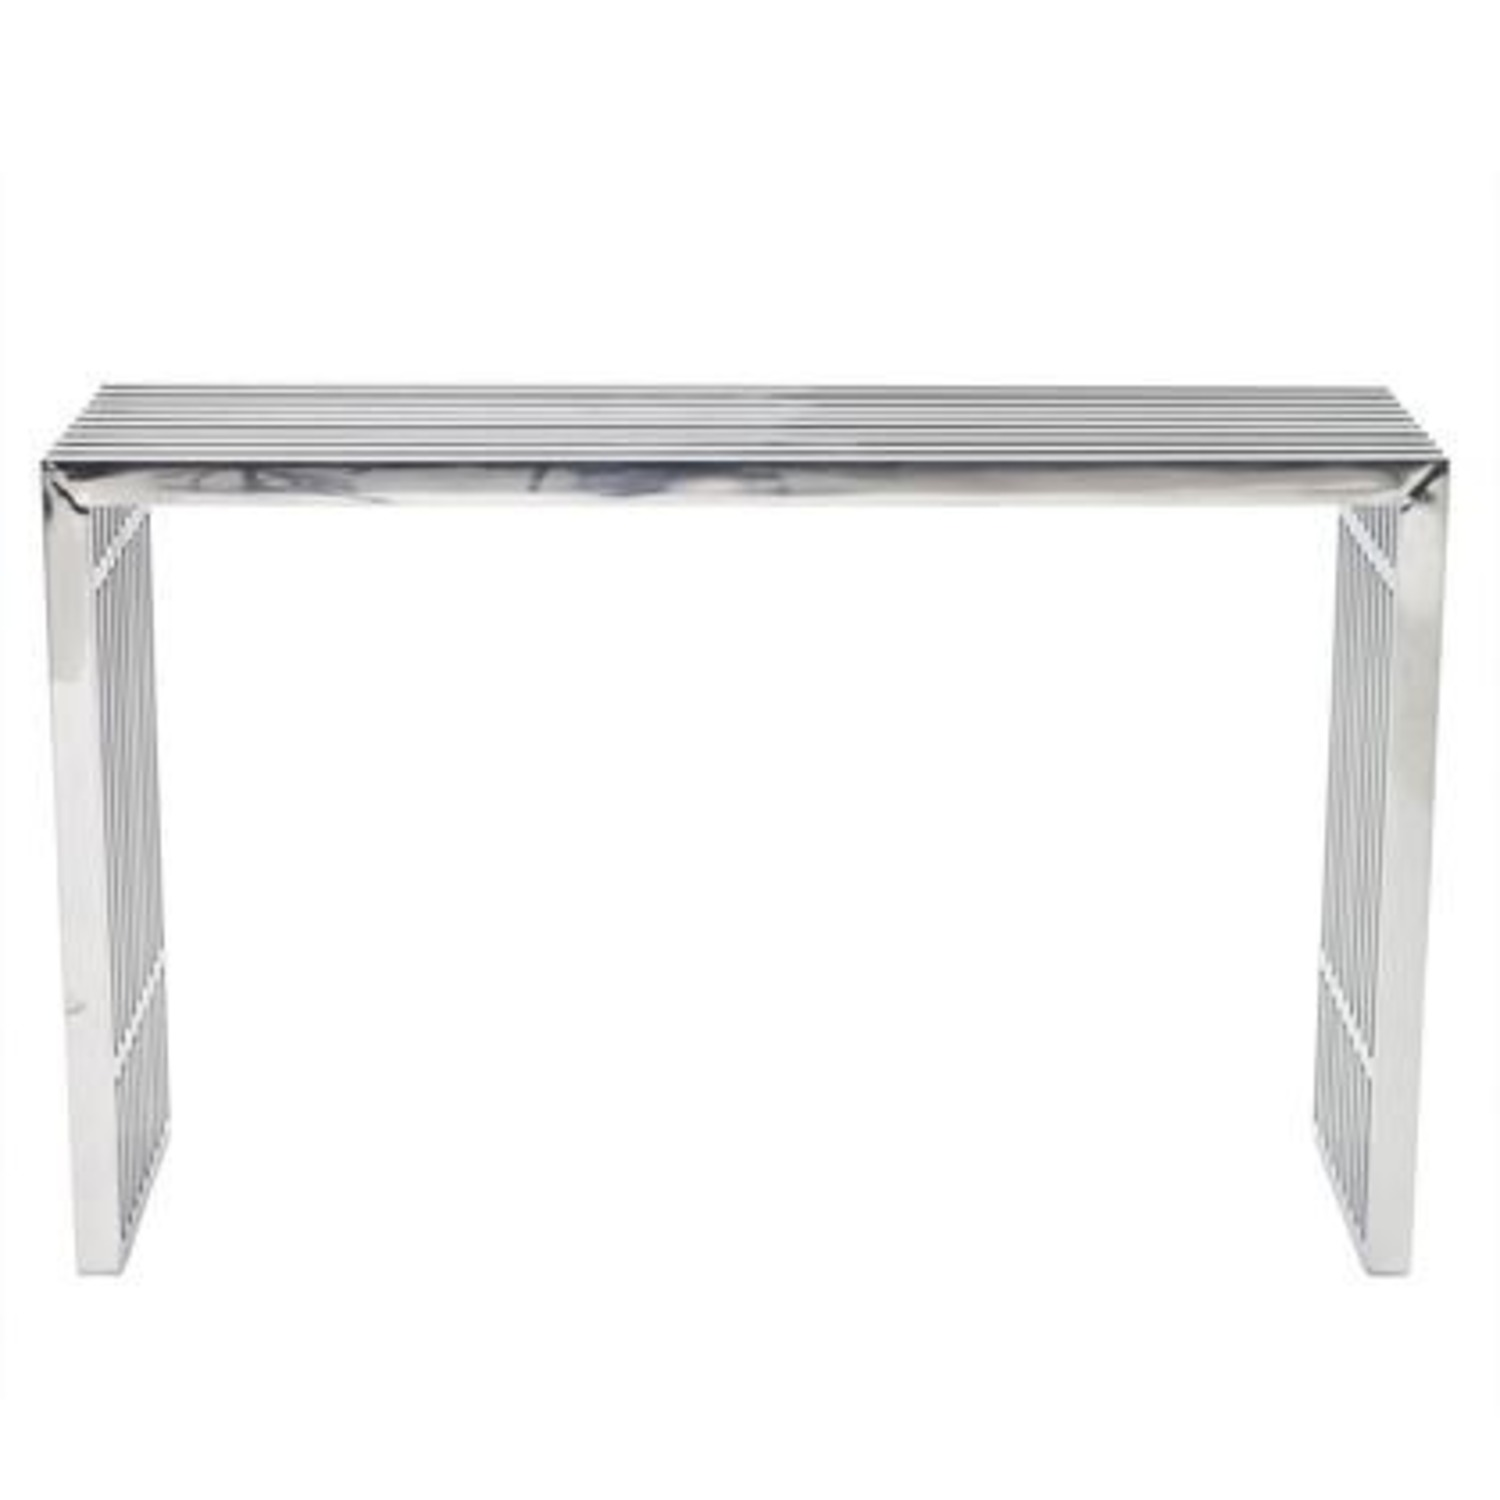 Modern Console Table In Silver Stainless Finish - image-0